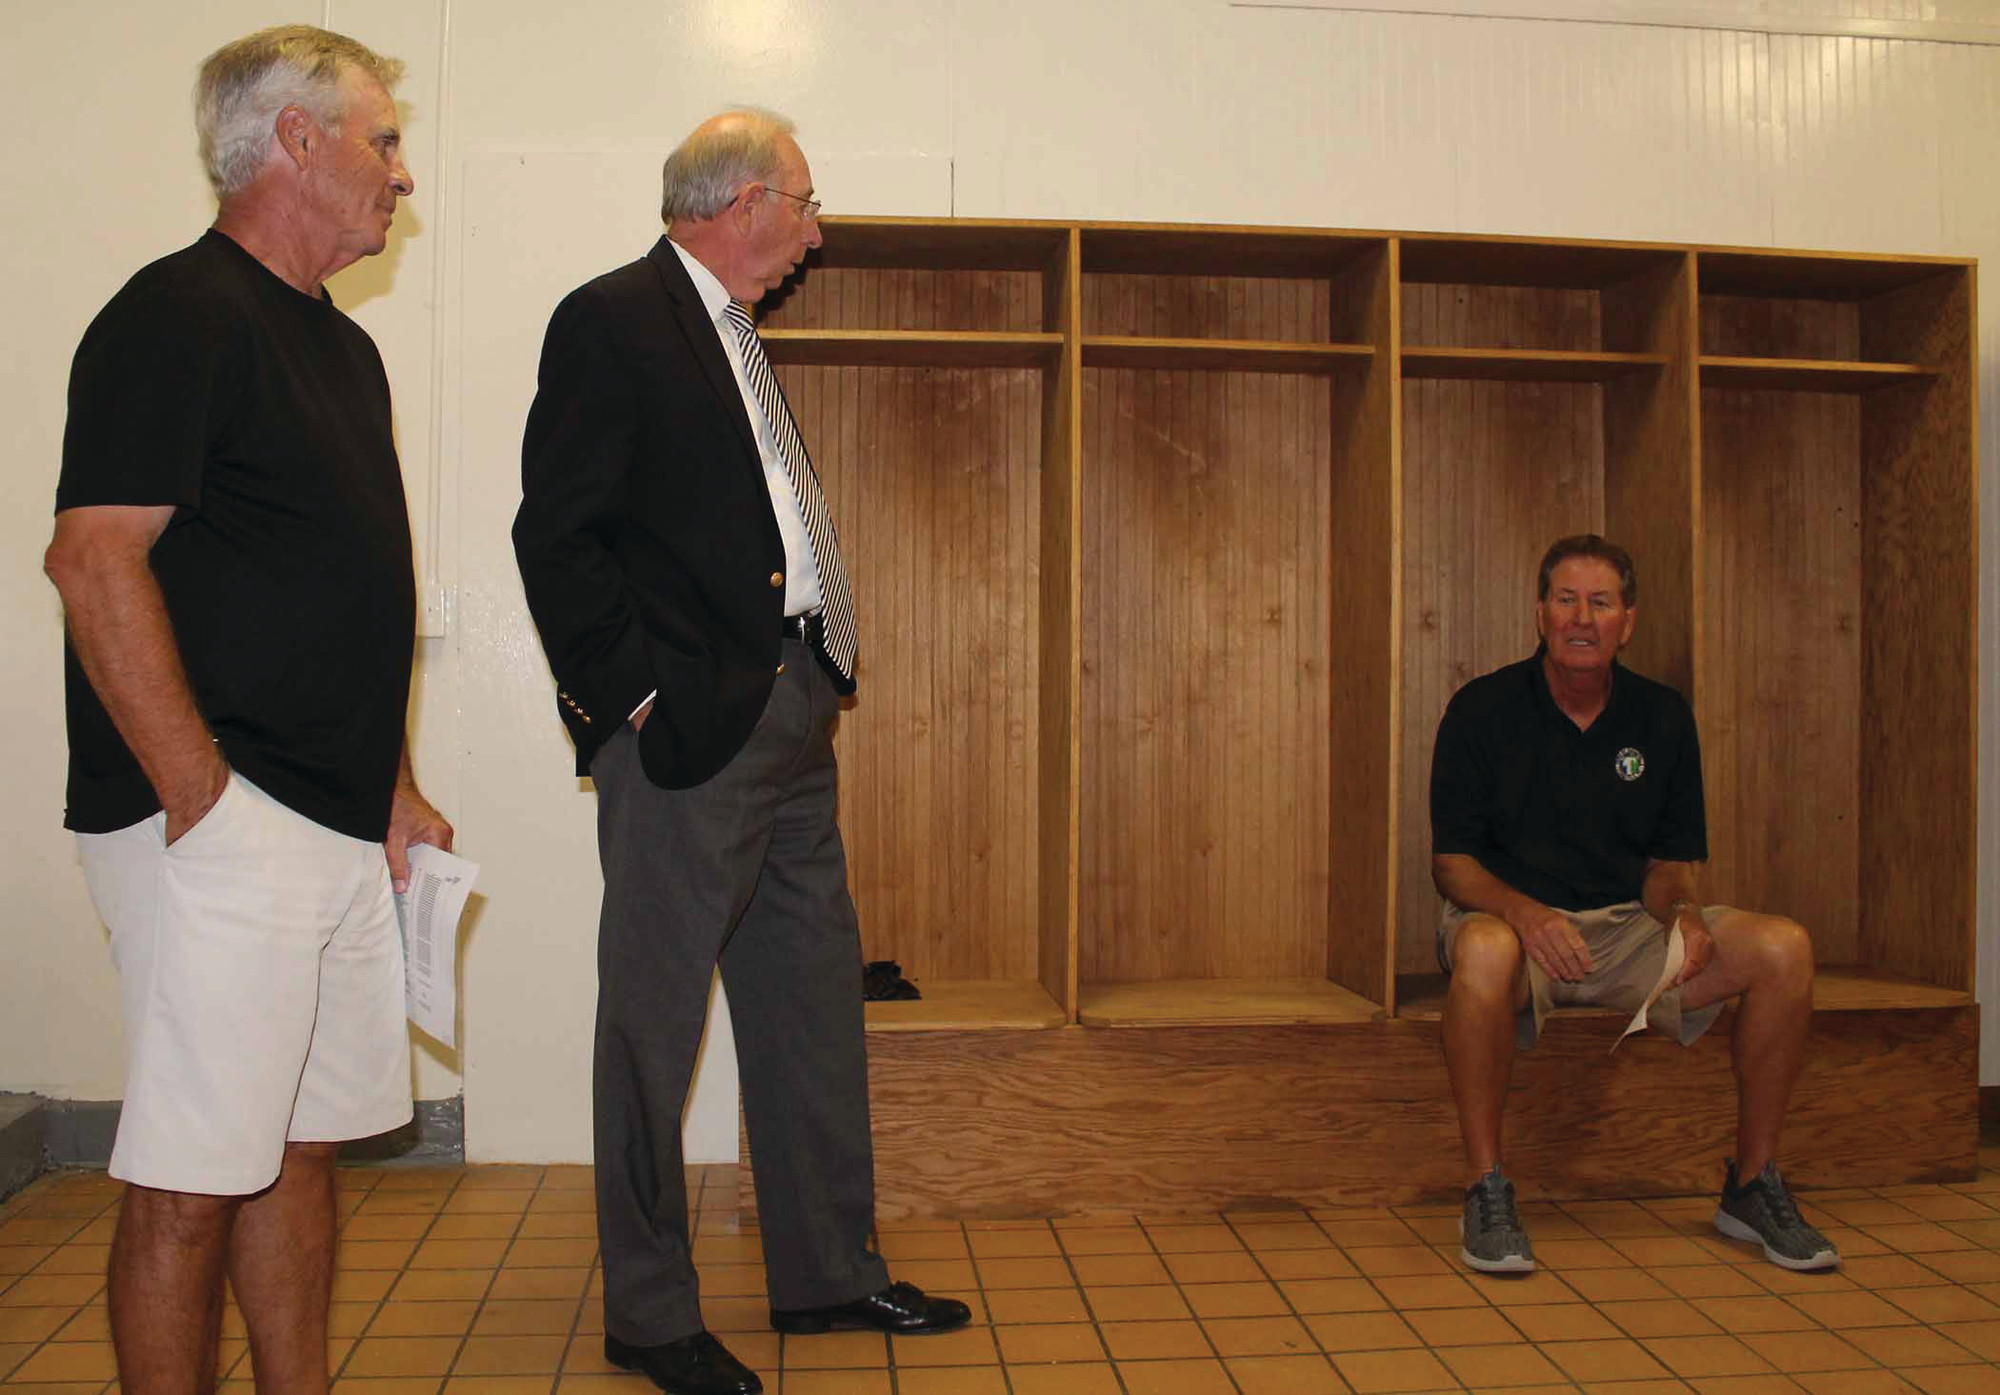 Donald Hardy, Blake Gibbons and Dwayne Howell are seen in the newly renovated girls' locker room at East Clarendon High School. The Citizens Bank of Turbeville, where Gibbons serves as president and chief operating officer, was one of several local businesses that made generous contributions toward the renovation project.